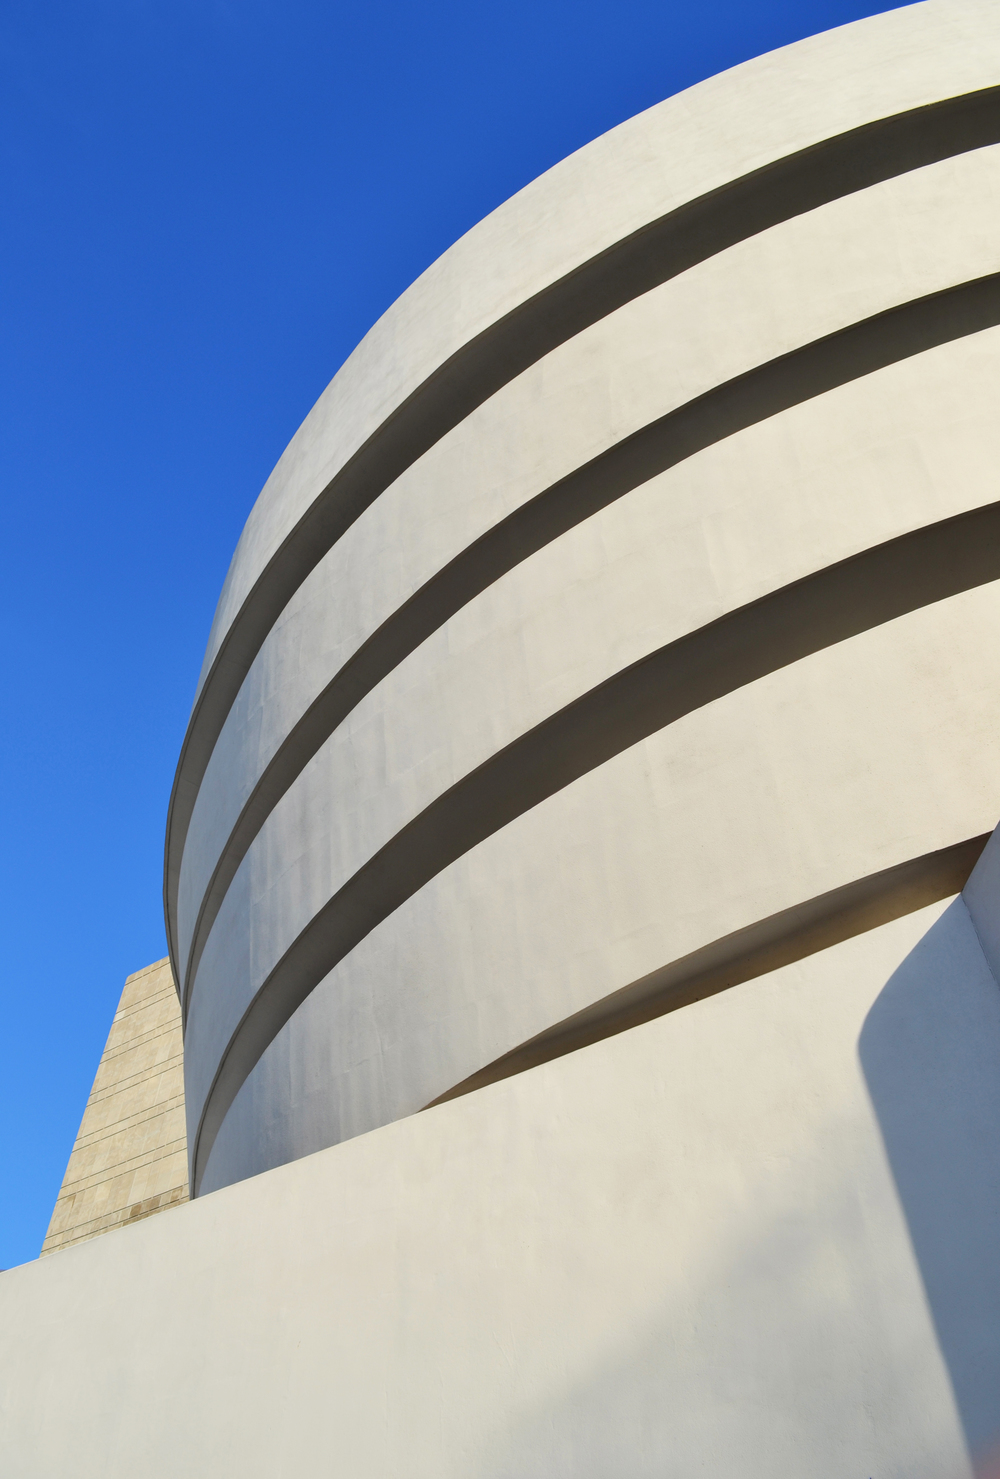 The Guggenheim outside